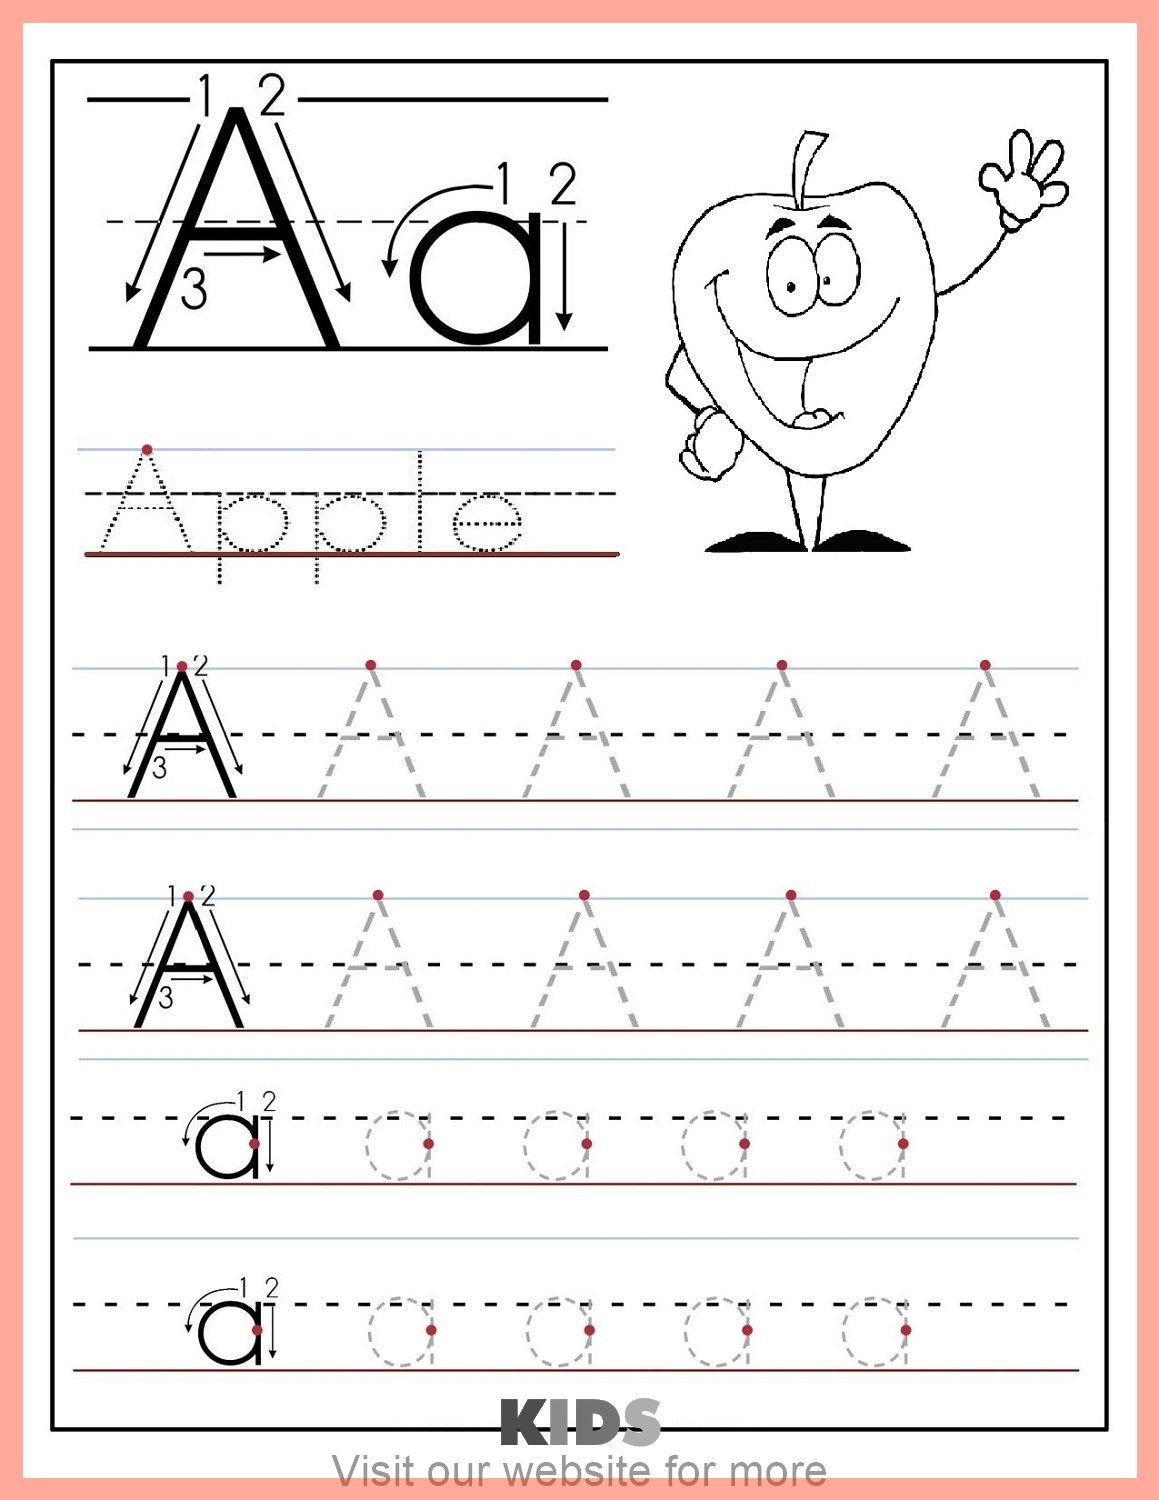 Printable Kids Chore Chart In